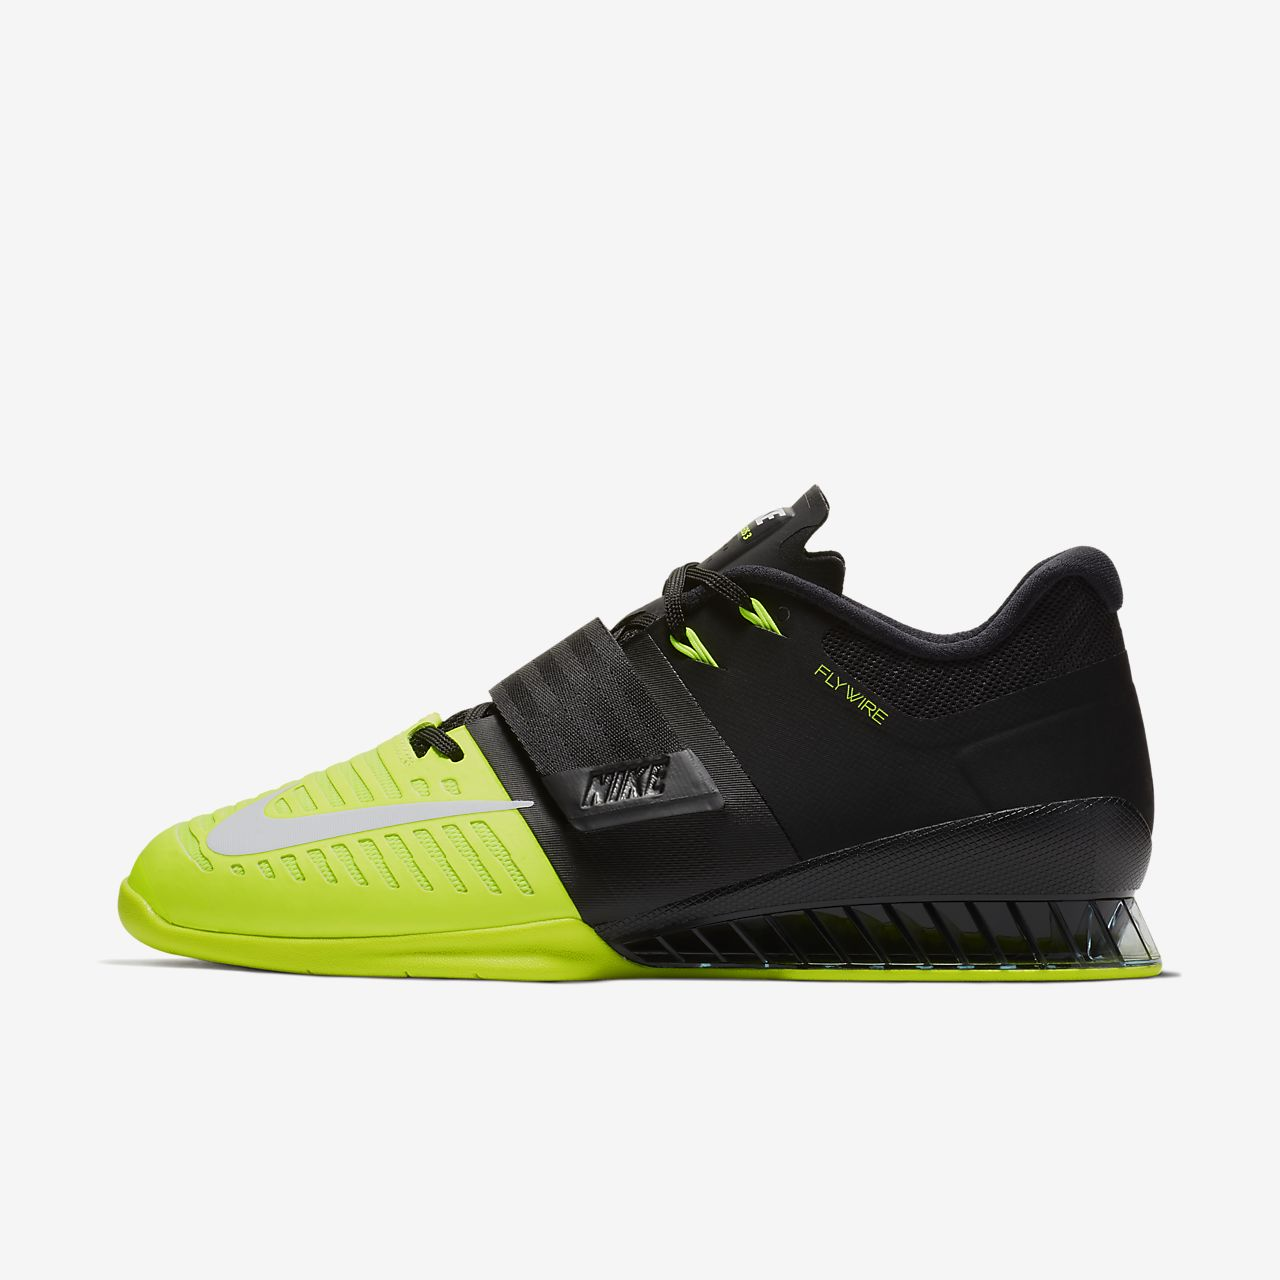 Low Resolution Nike Romaleos 3 Weightlifting Shoe Nike Romaleos 3 Weightlifting  Shoe